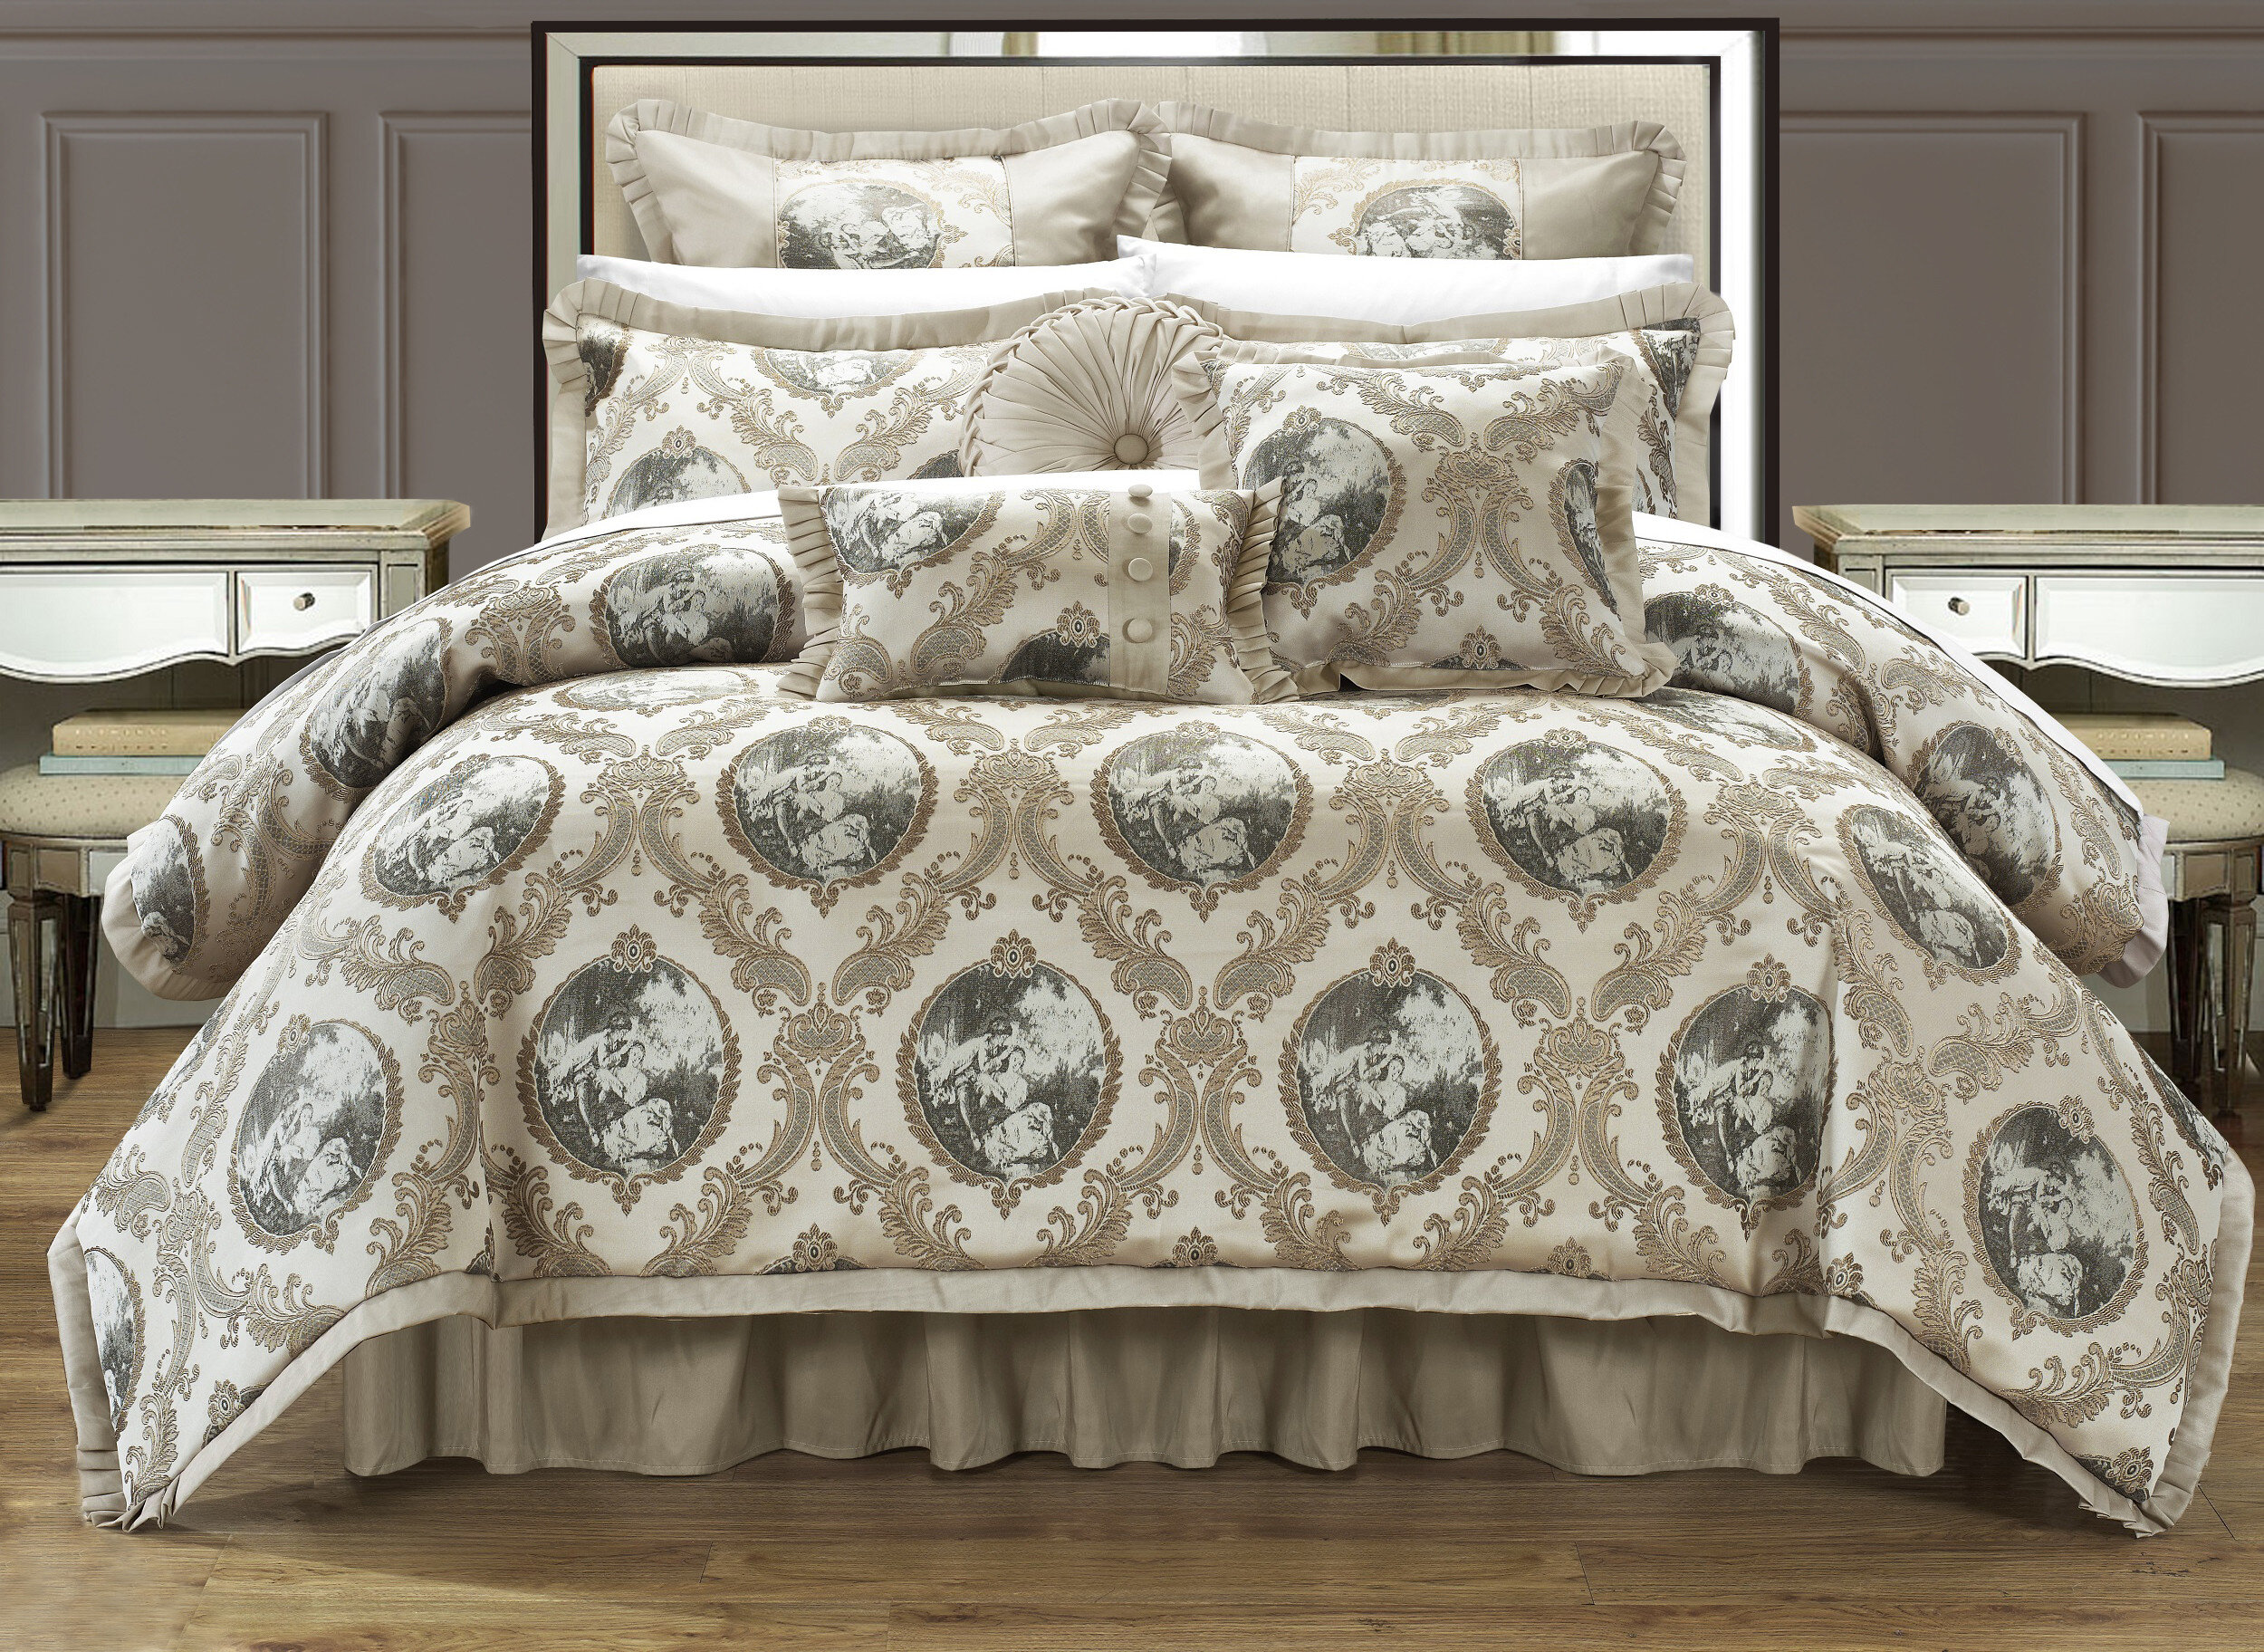 queen by raw home classic estate collectibles comforter magnifier kathy piece hallmart ireland set